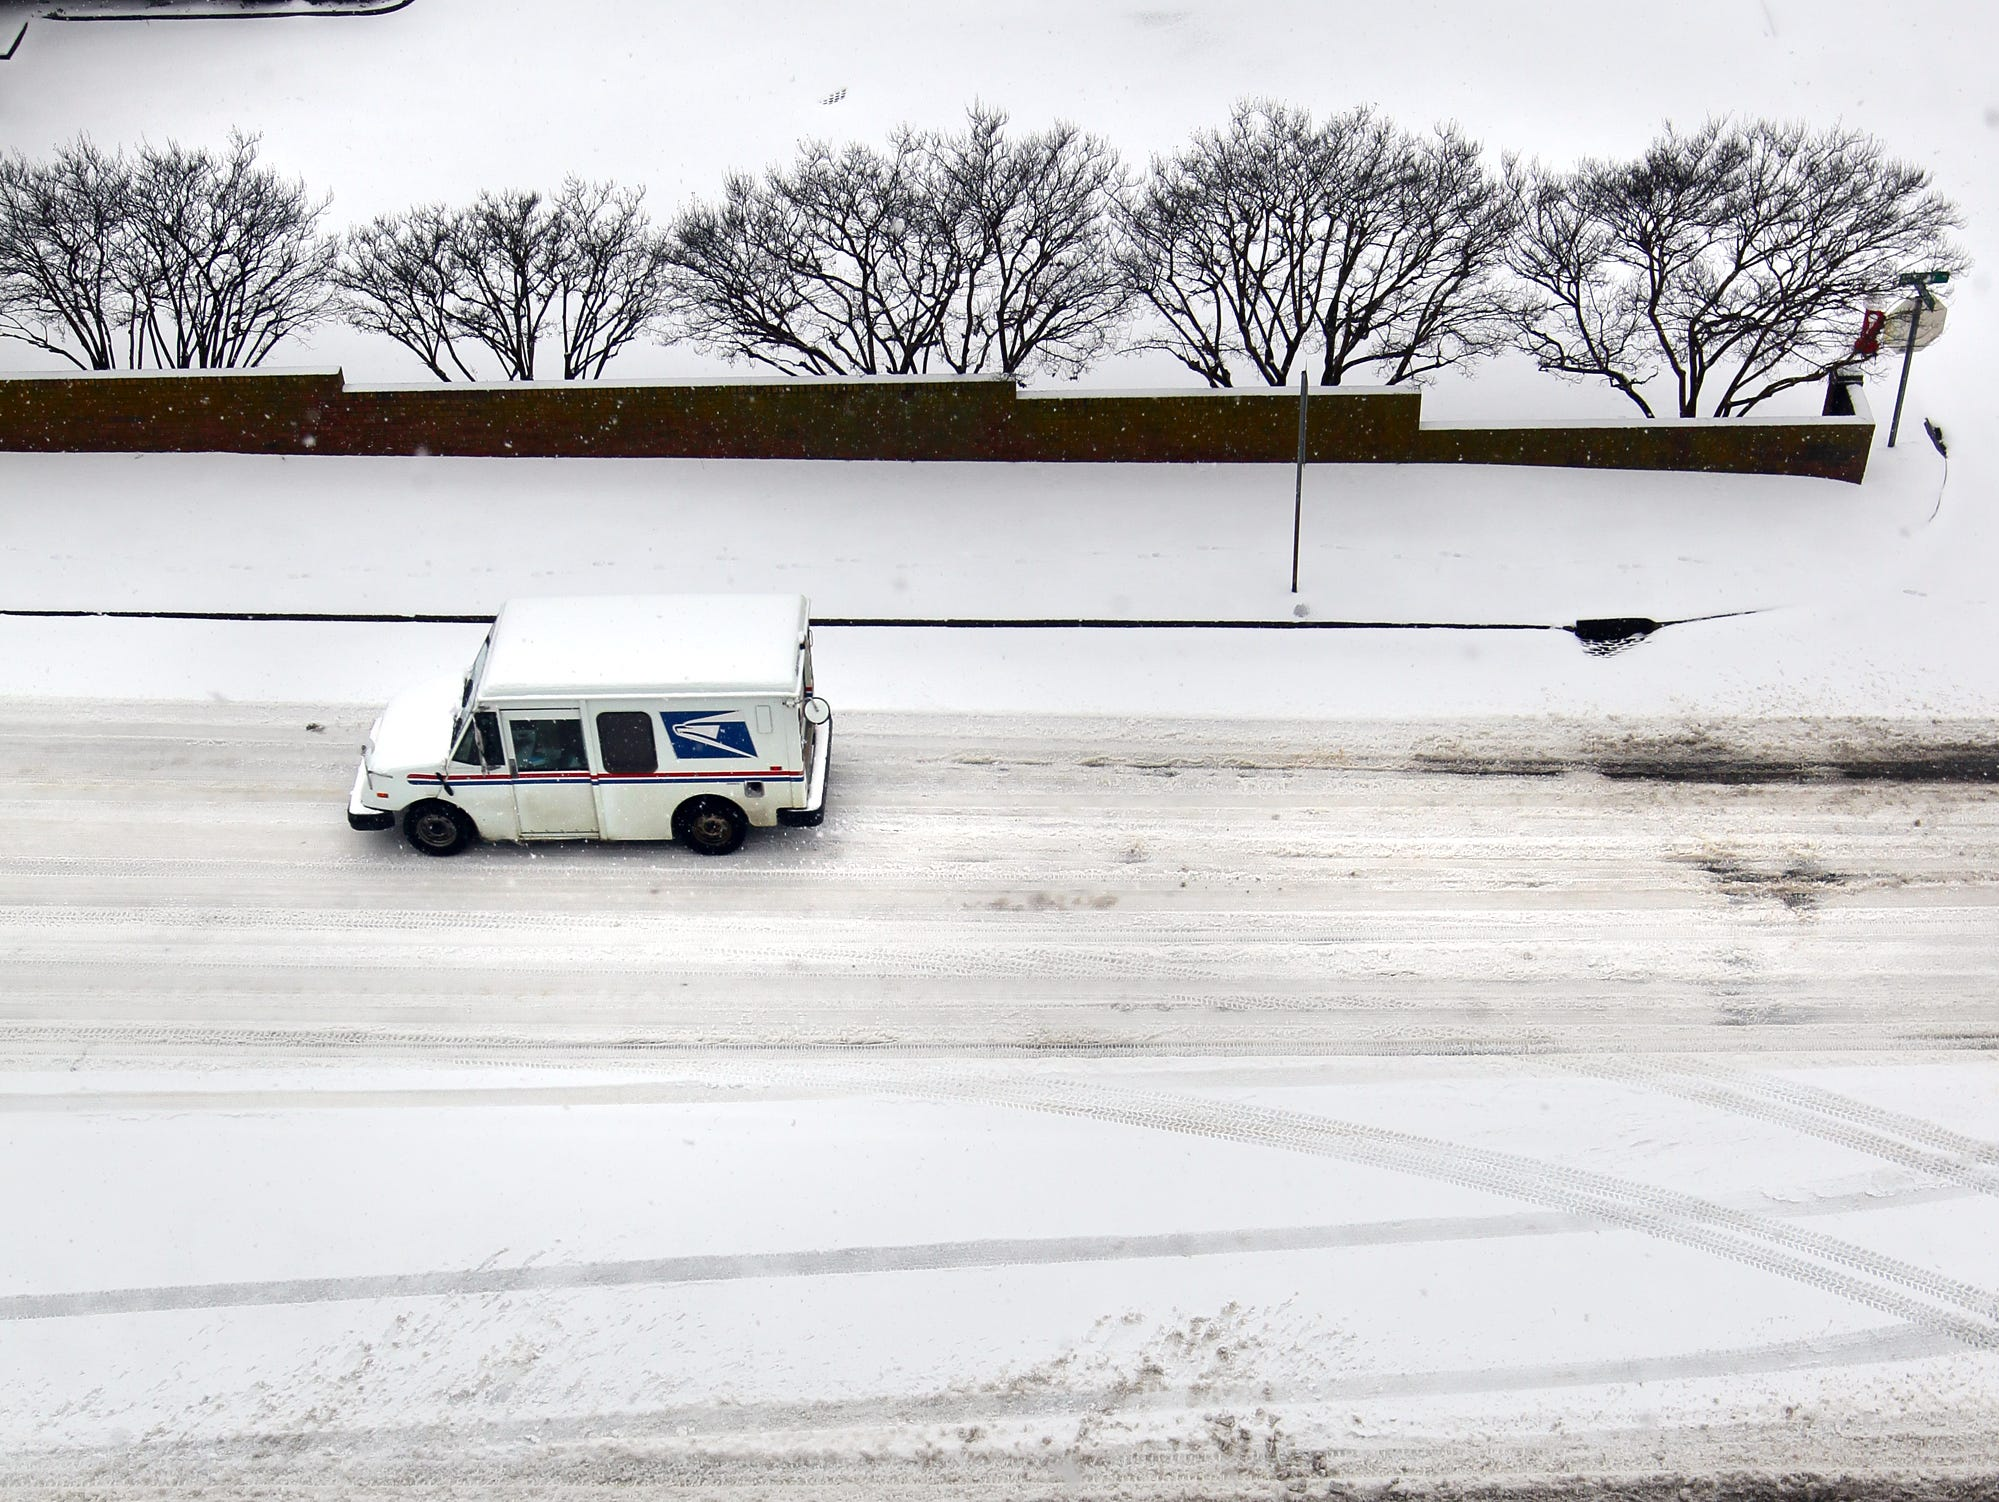 A United States Postal truck drives through the melting snow on Murray Avenue in Anderson. The sun and warmer temperatures started melting the snow, and vehicles made and followed tracks during the first snow of 2014.